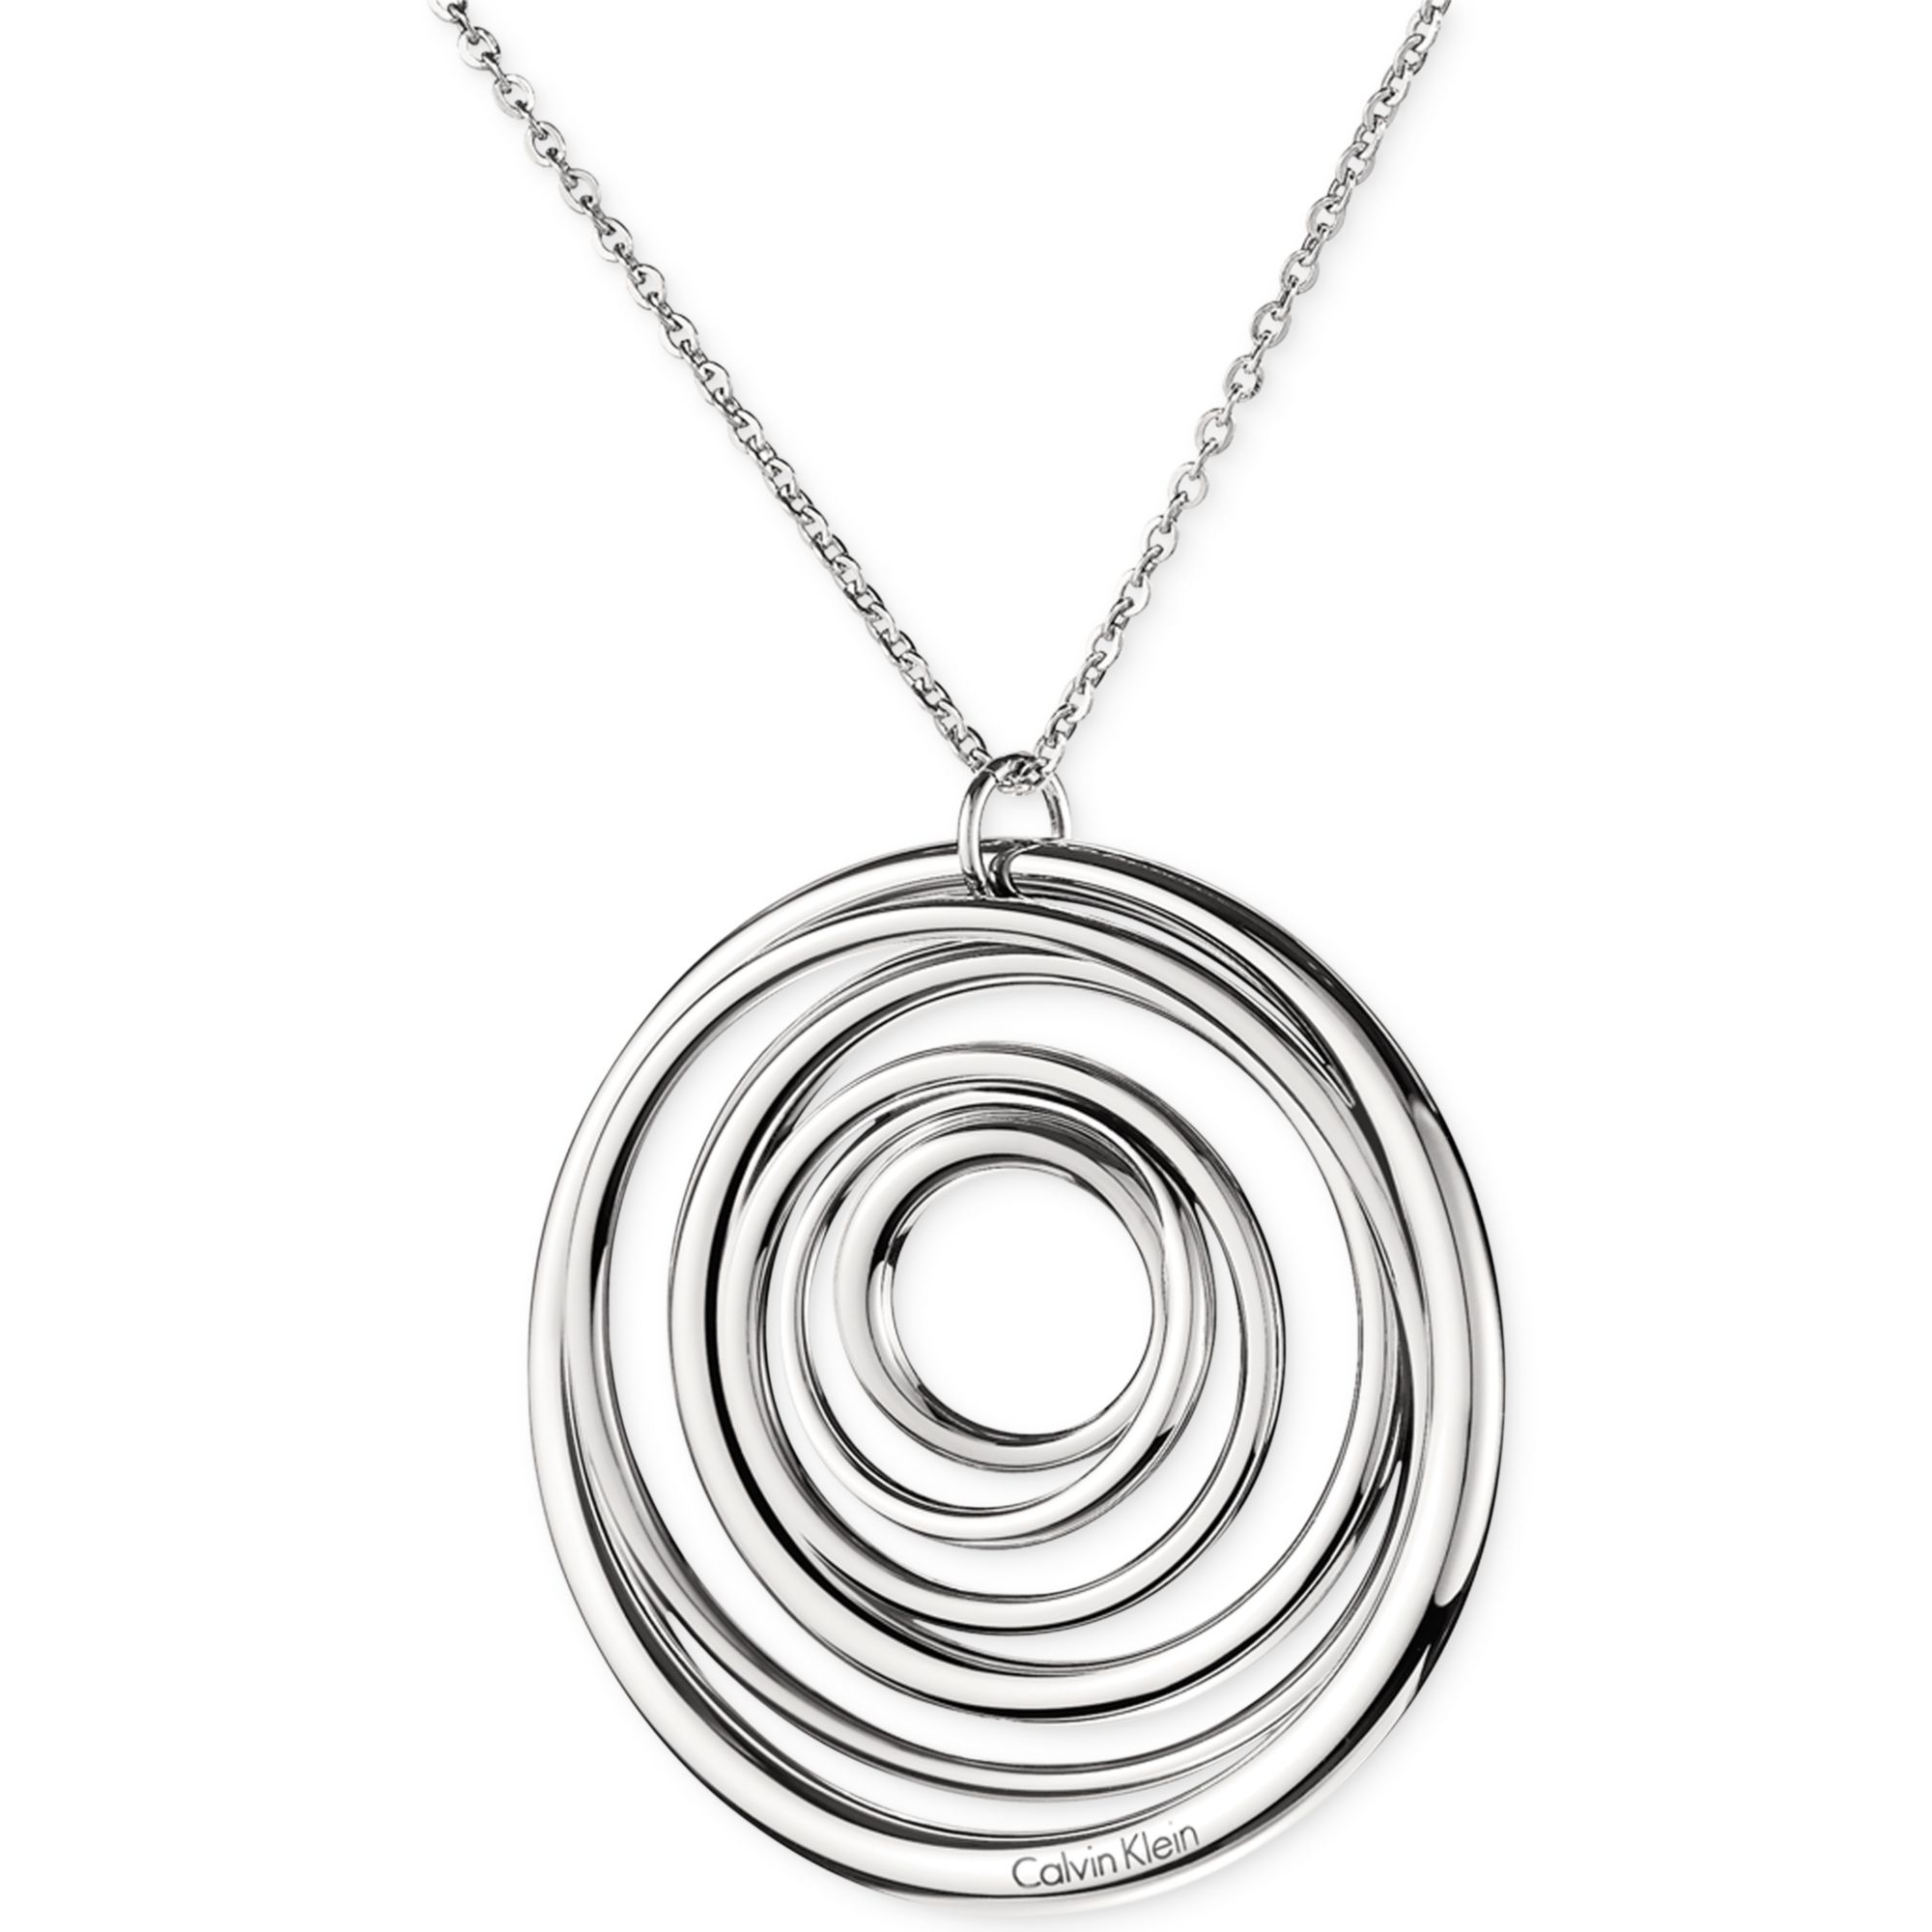 Calvin klein ck stainless steel polished circle pendant for Stainless steel jewelry necklace